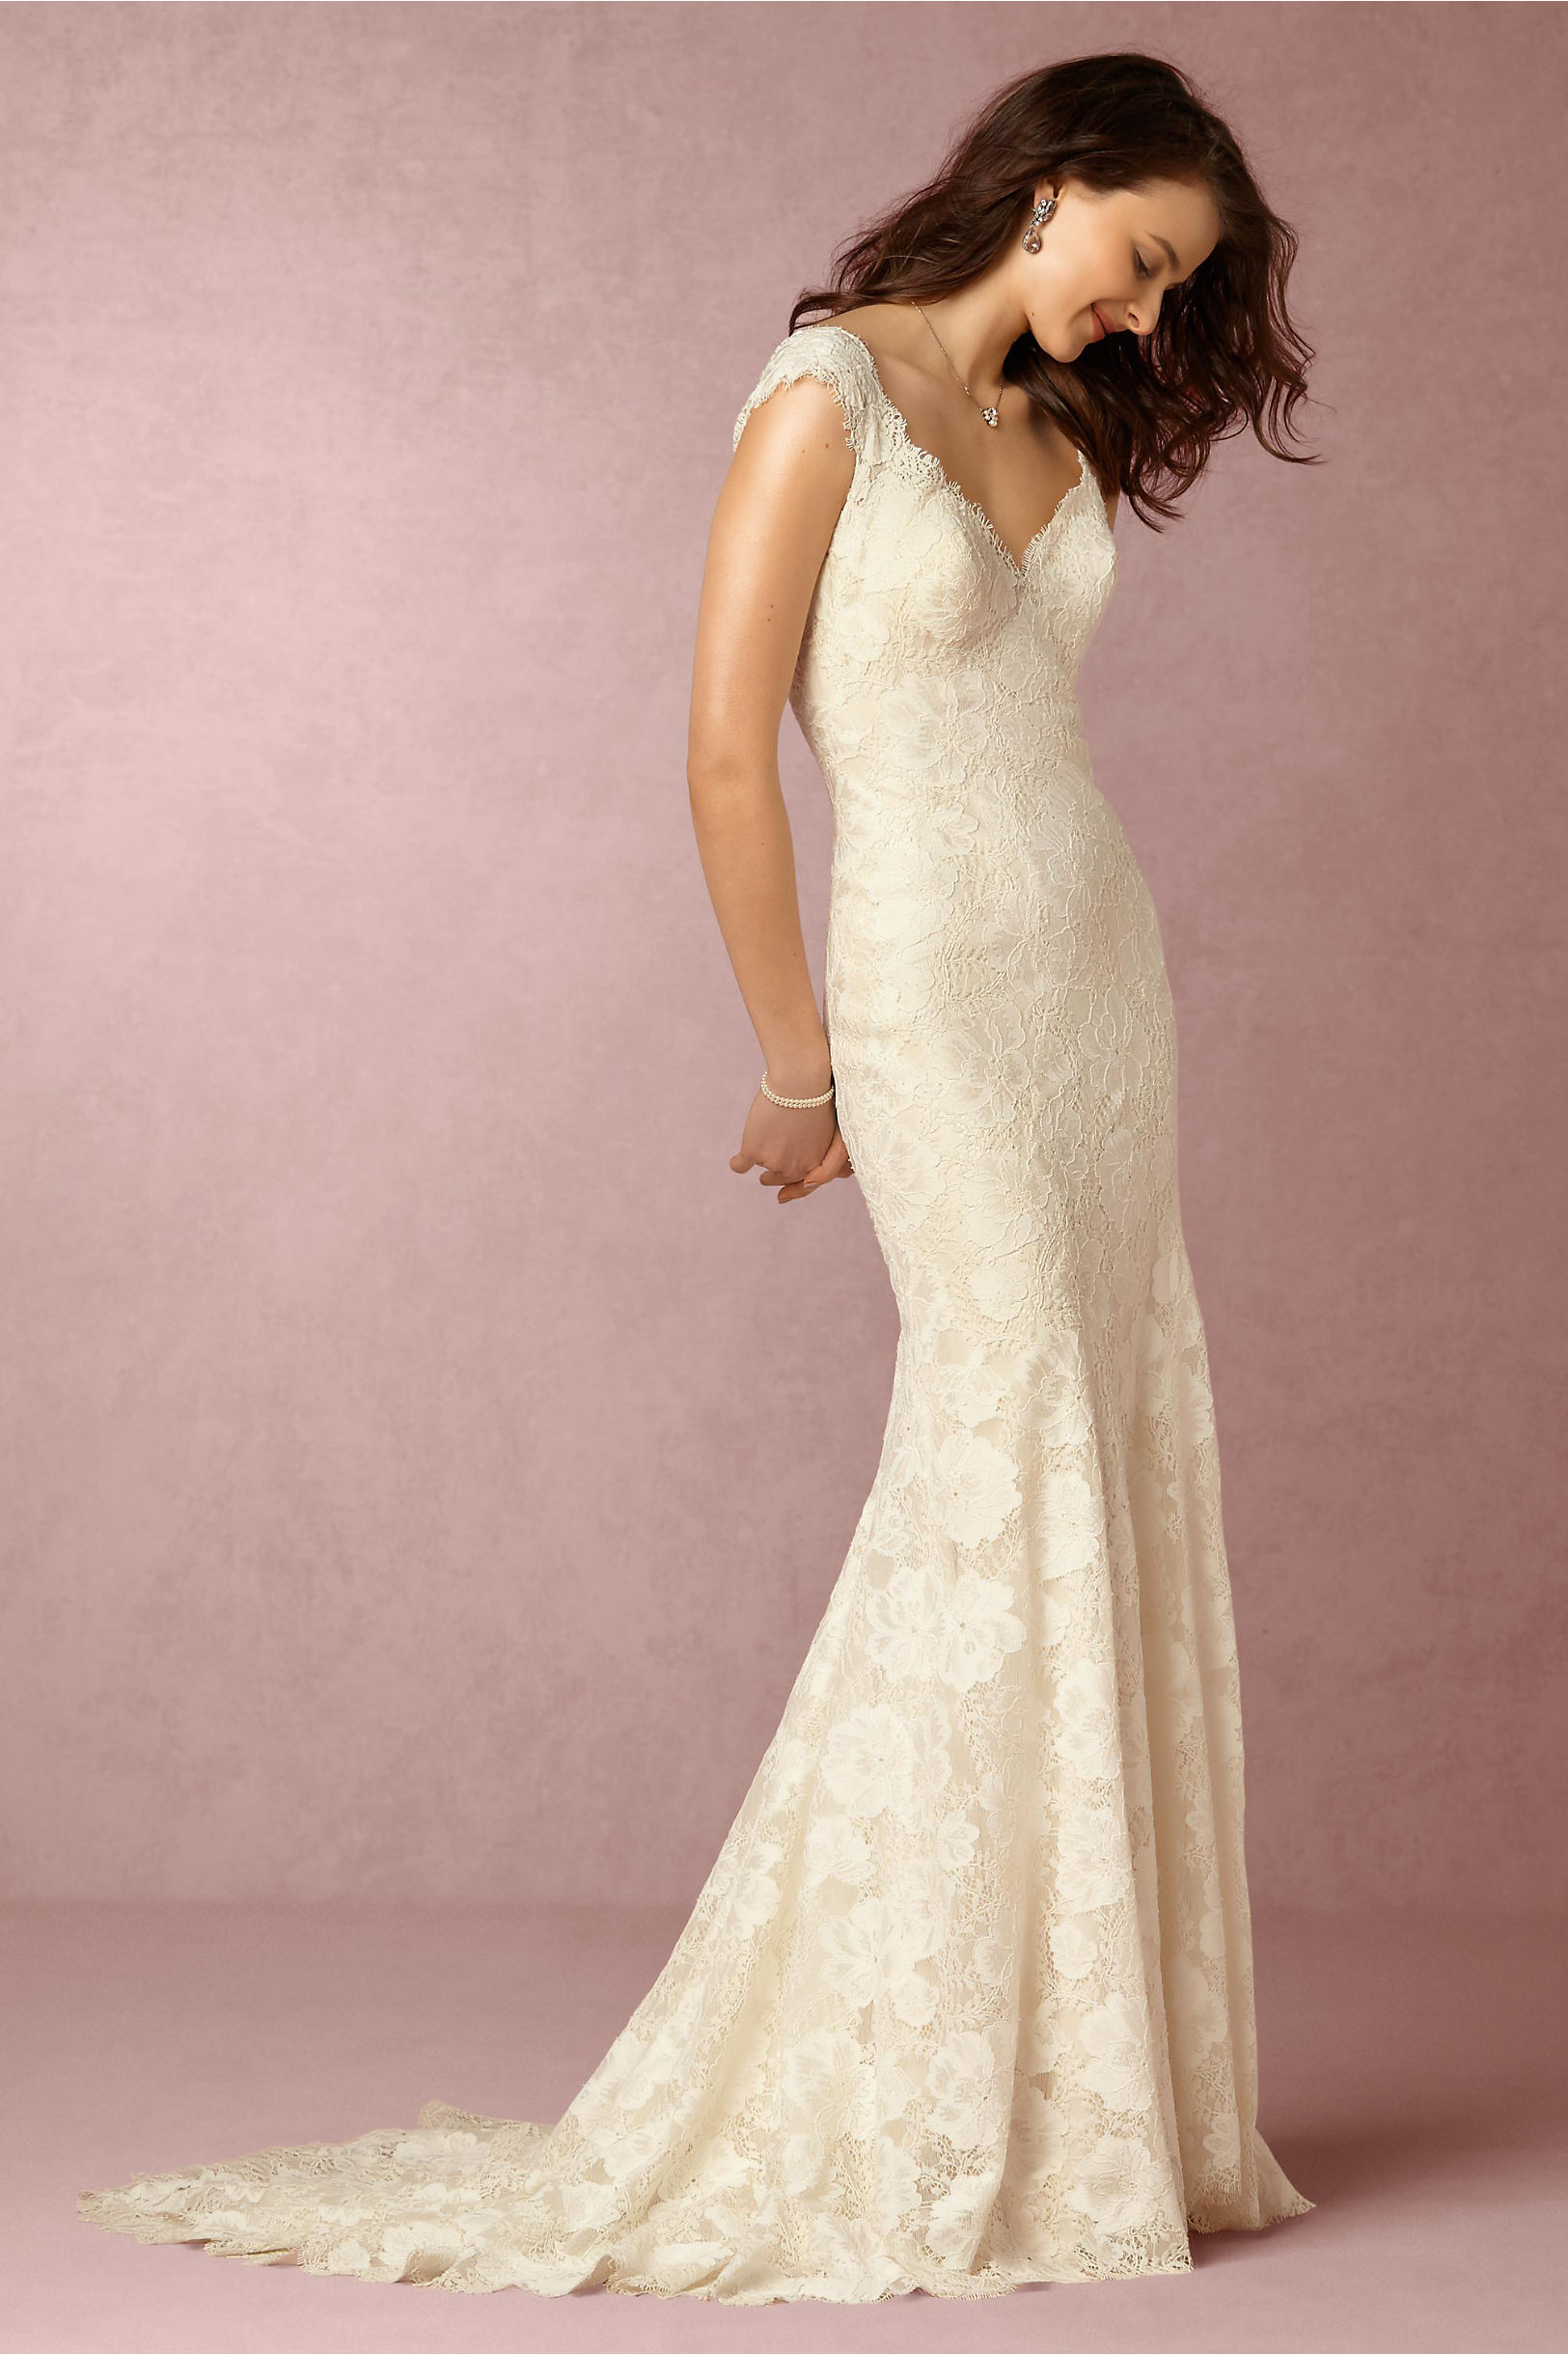 Wedding Dresses Archives - It Started With Yes!